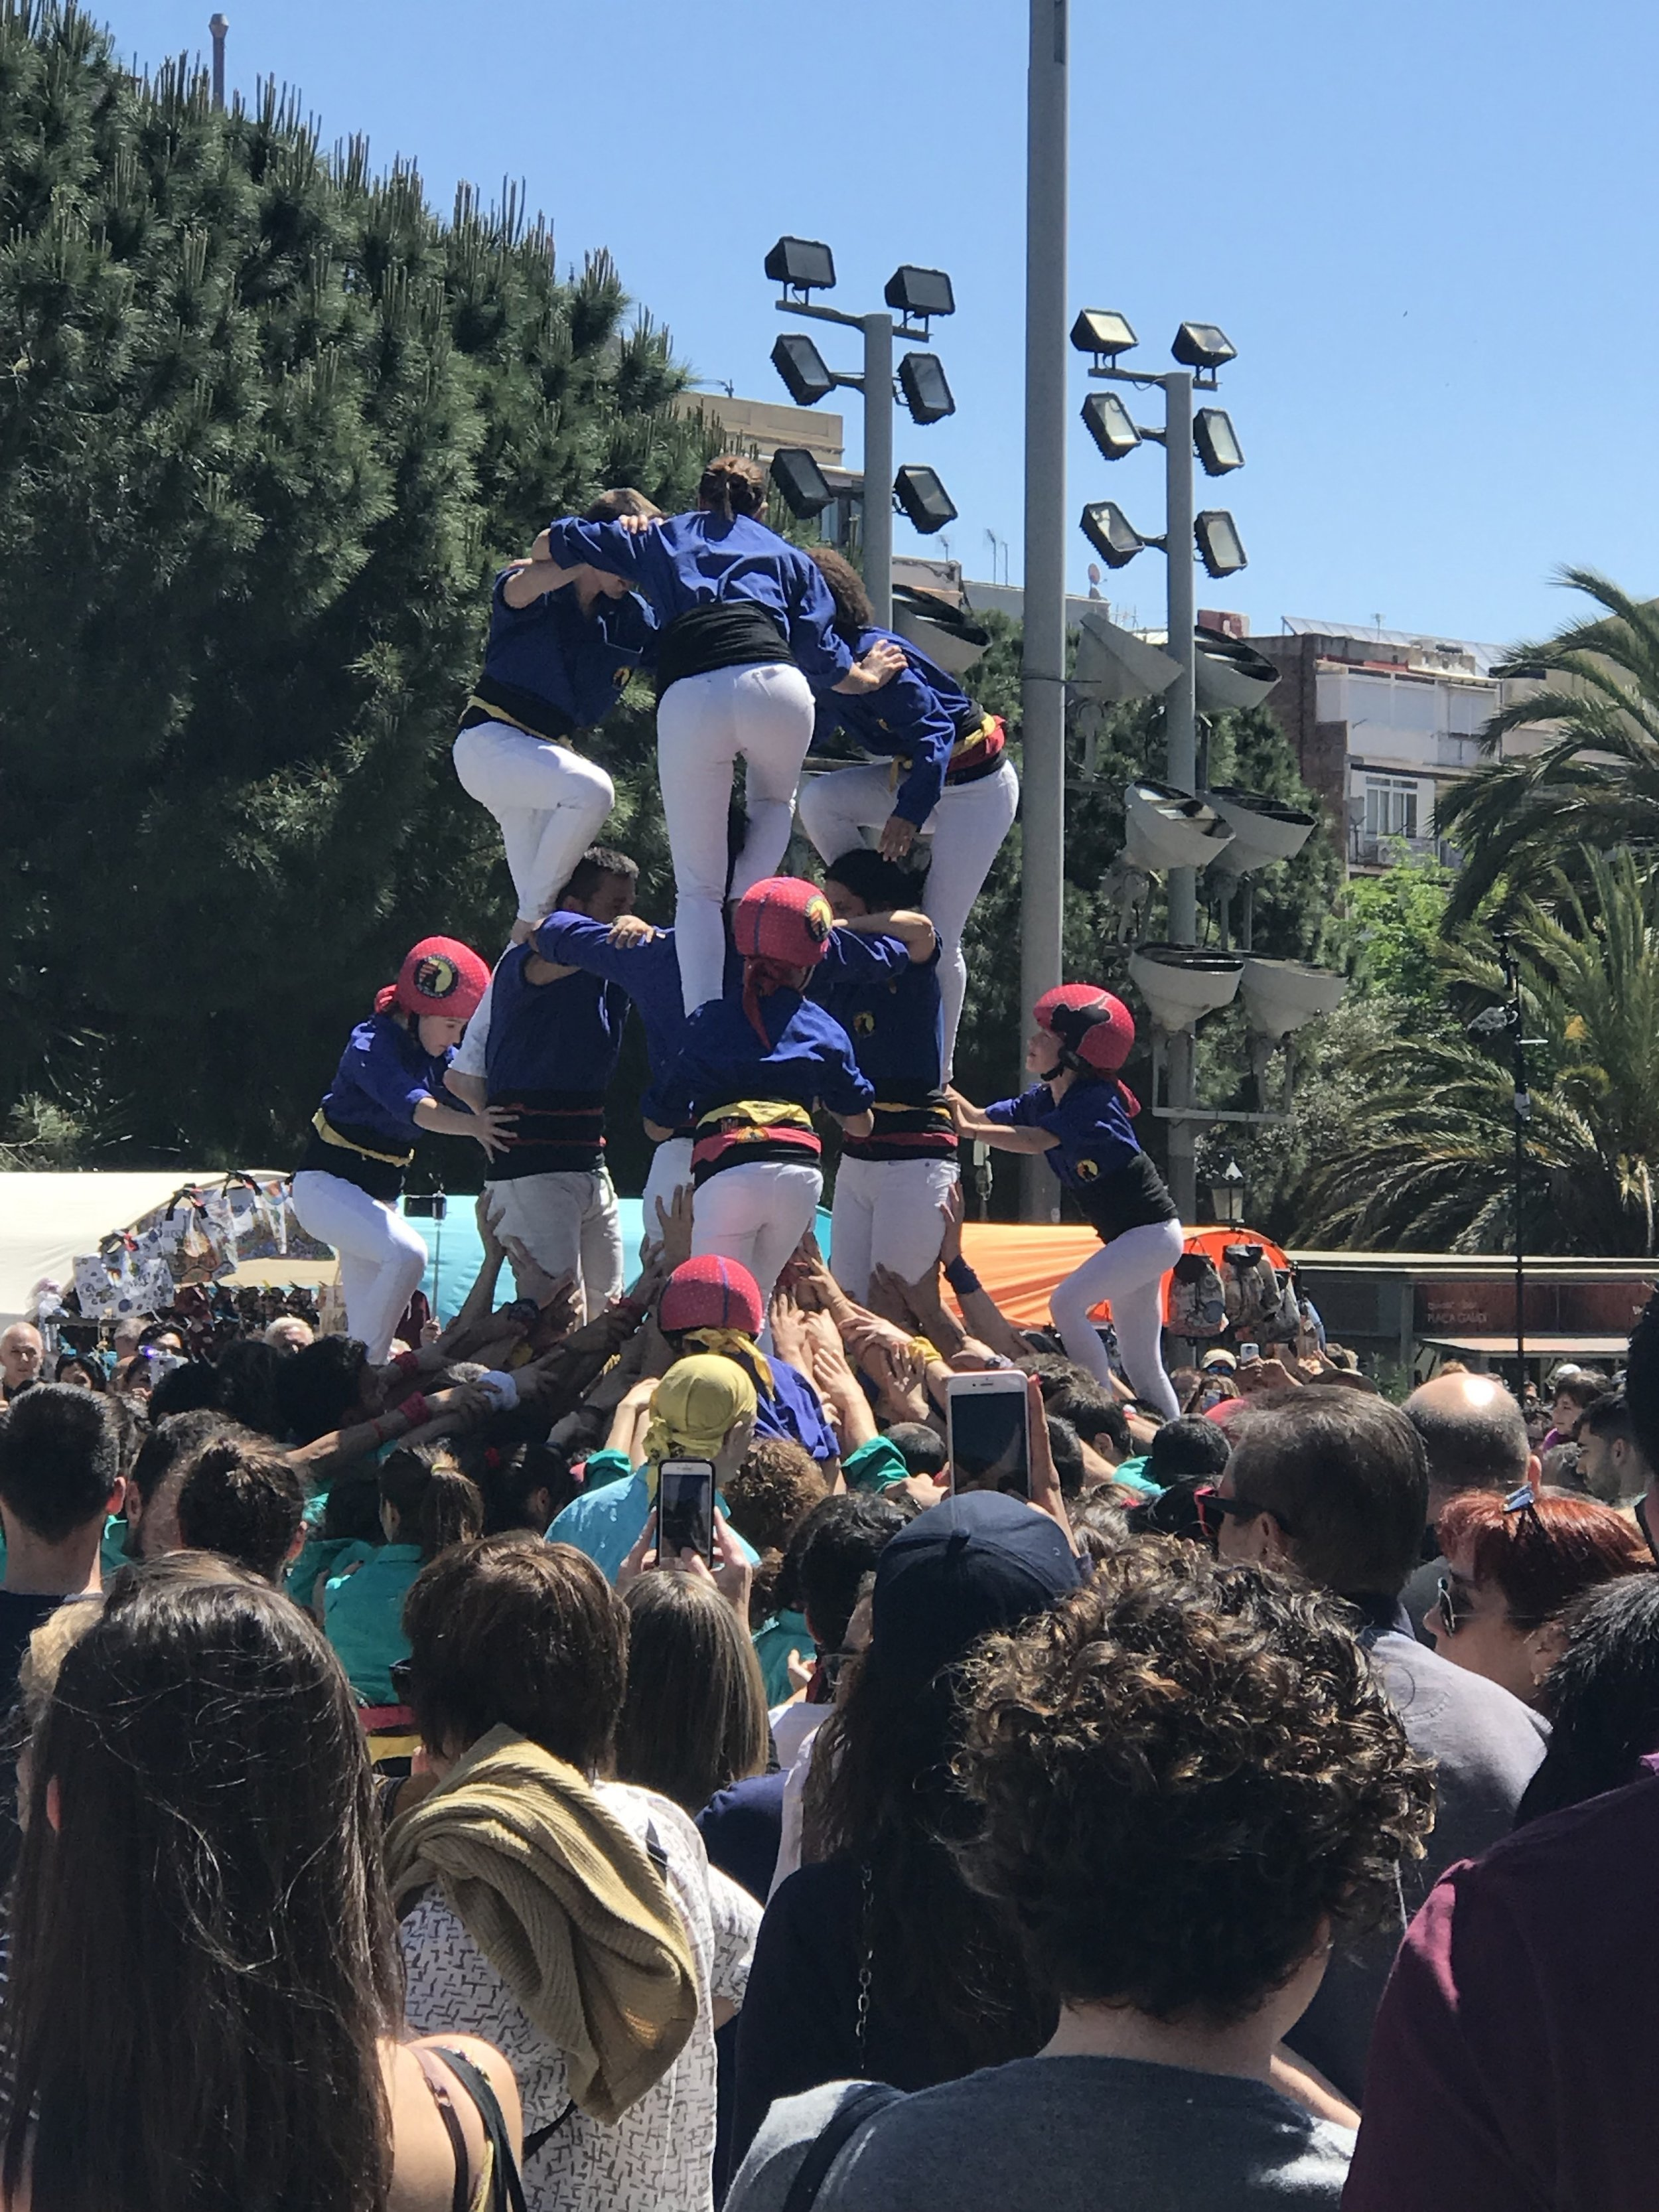 Castelleers climb on top of each other to build a human tower